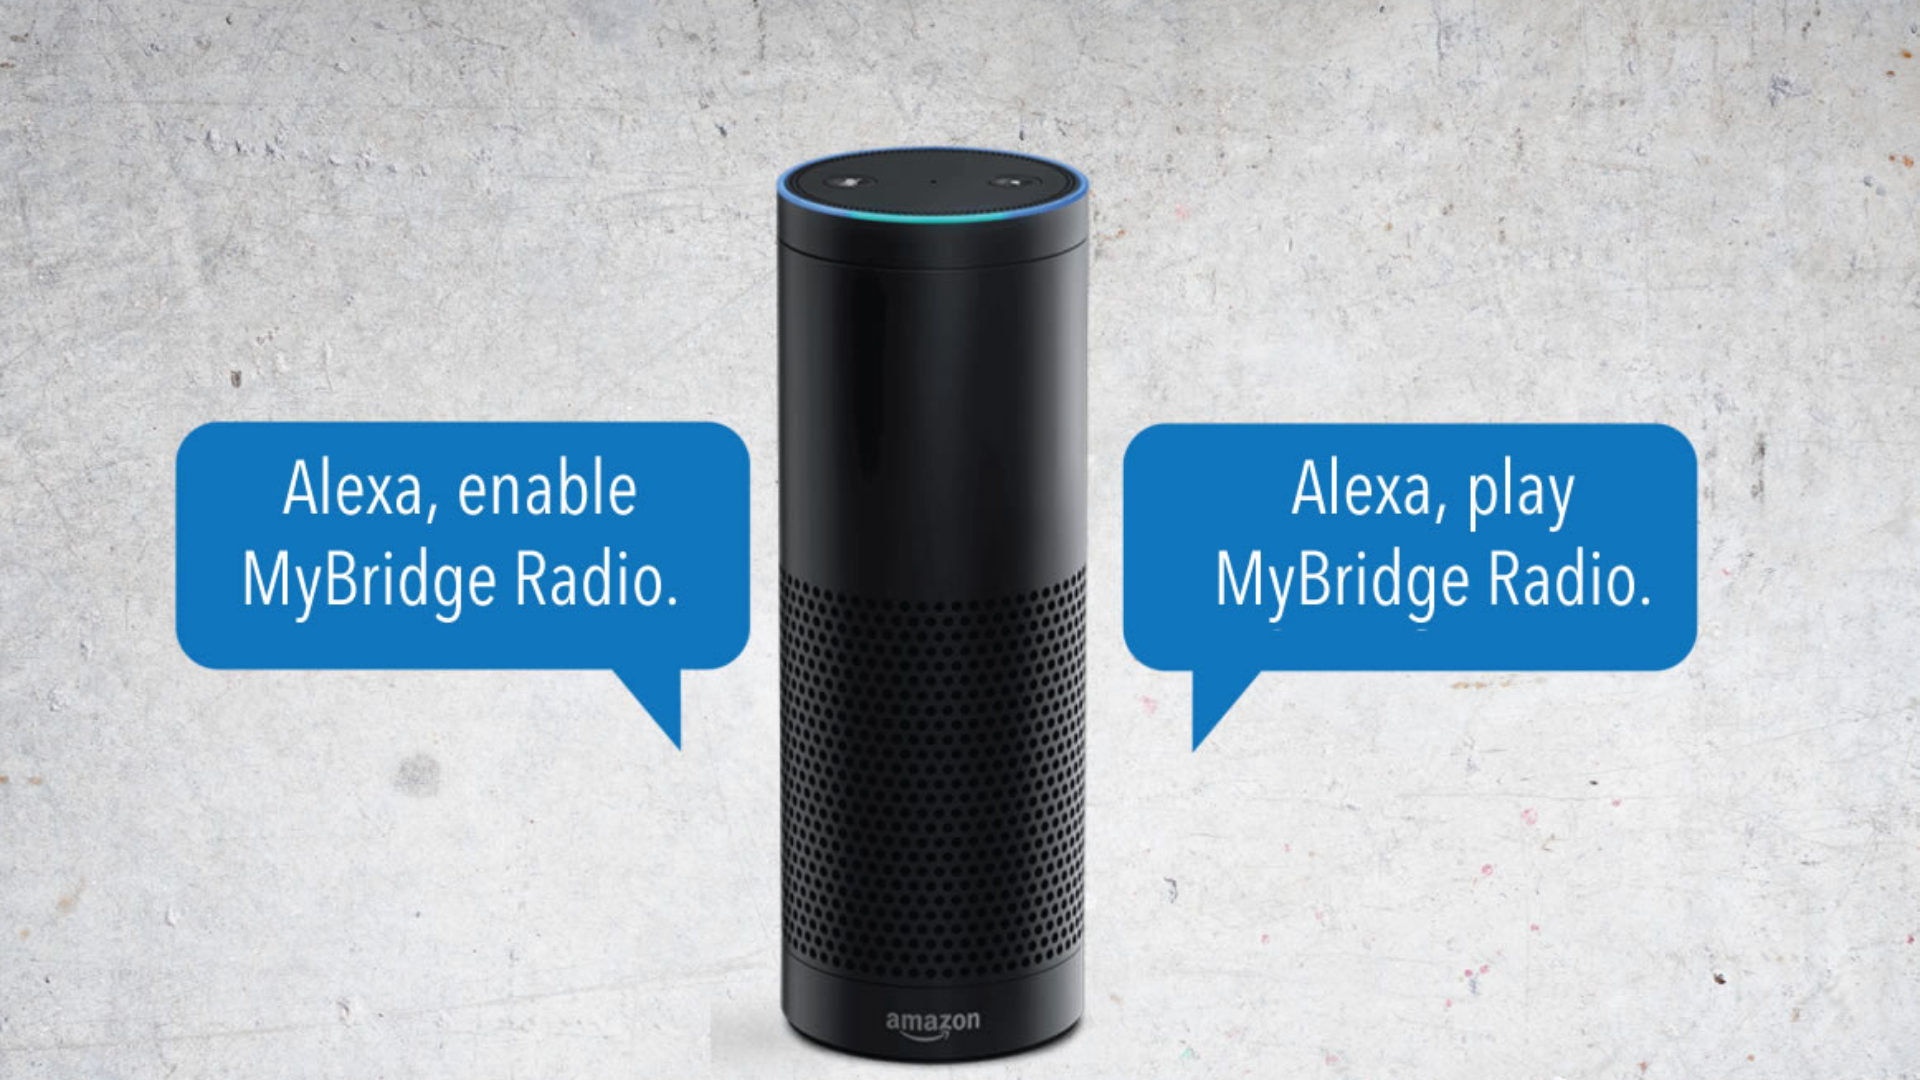 Alexa, enable MyBridge Radio - Alexa, play MyBridge Radio